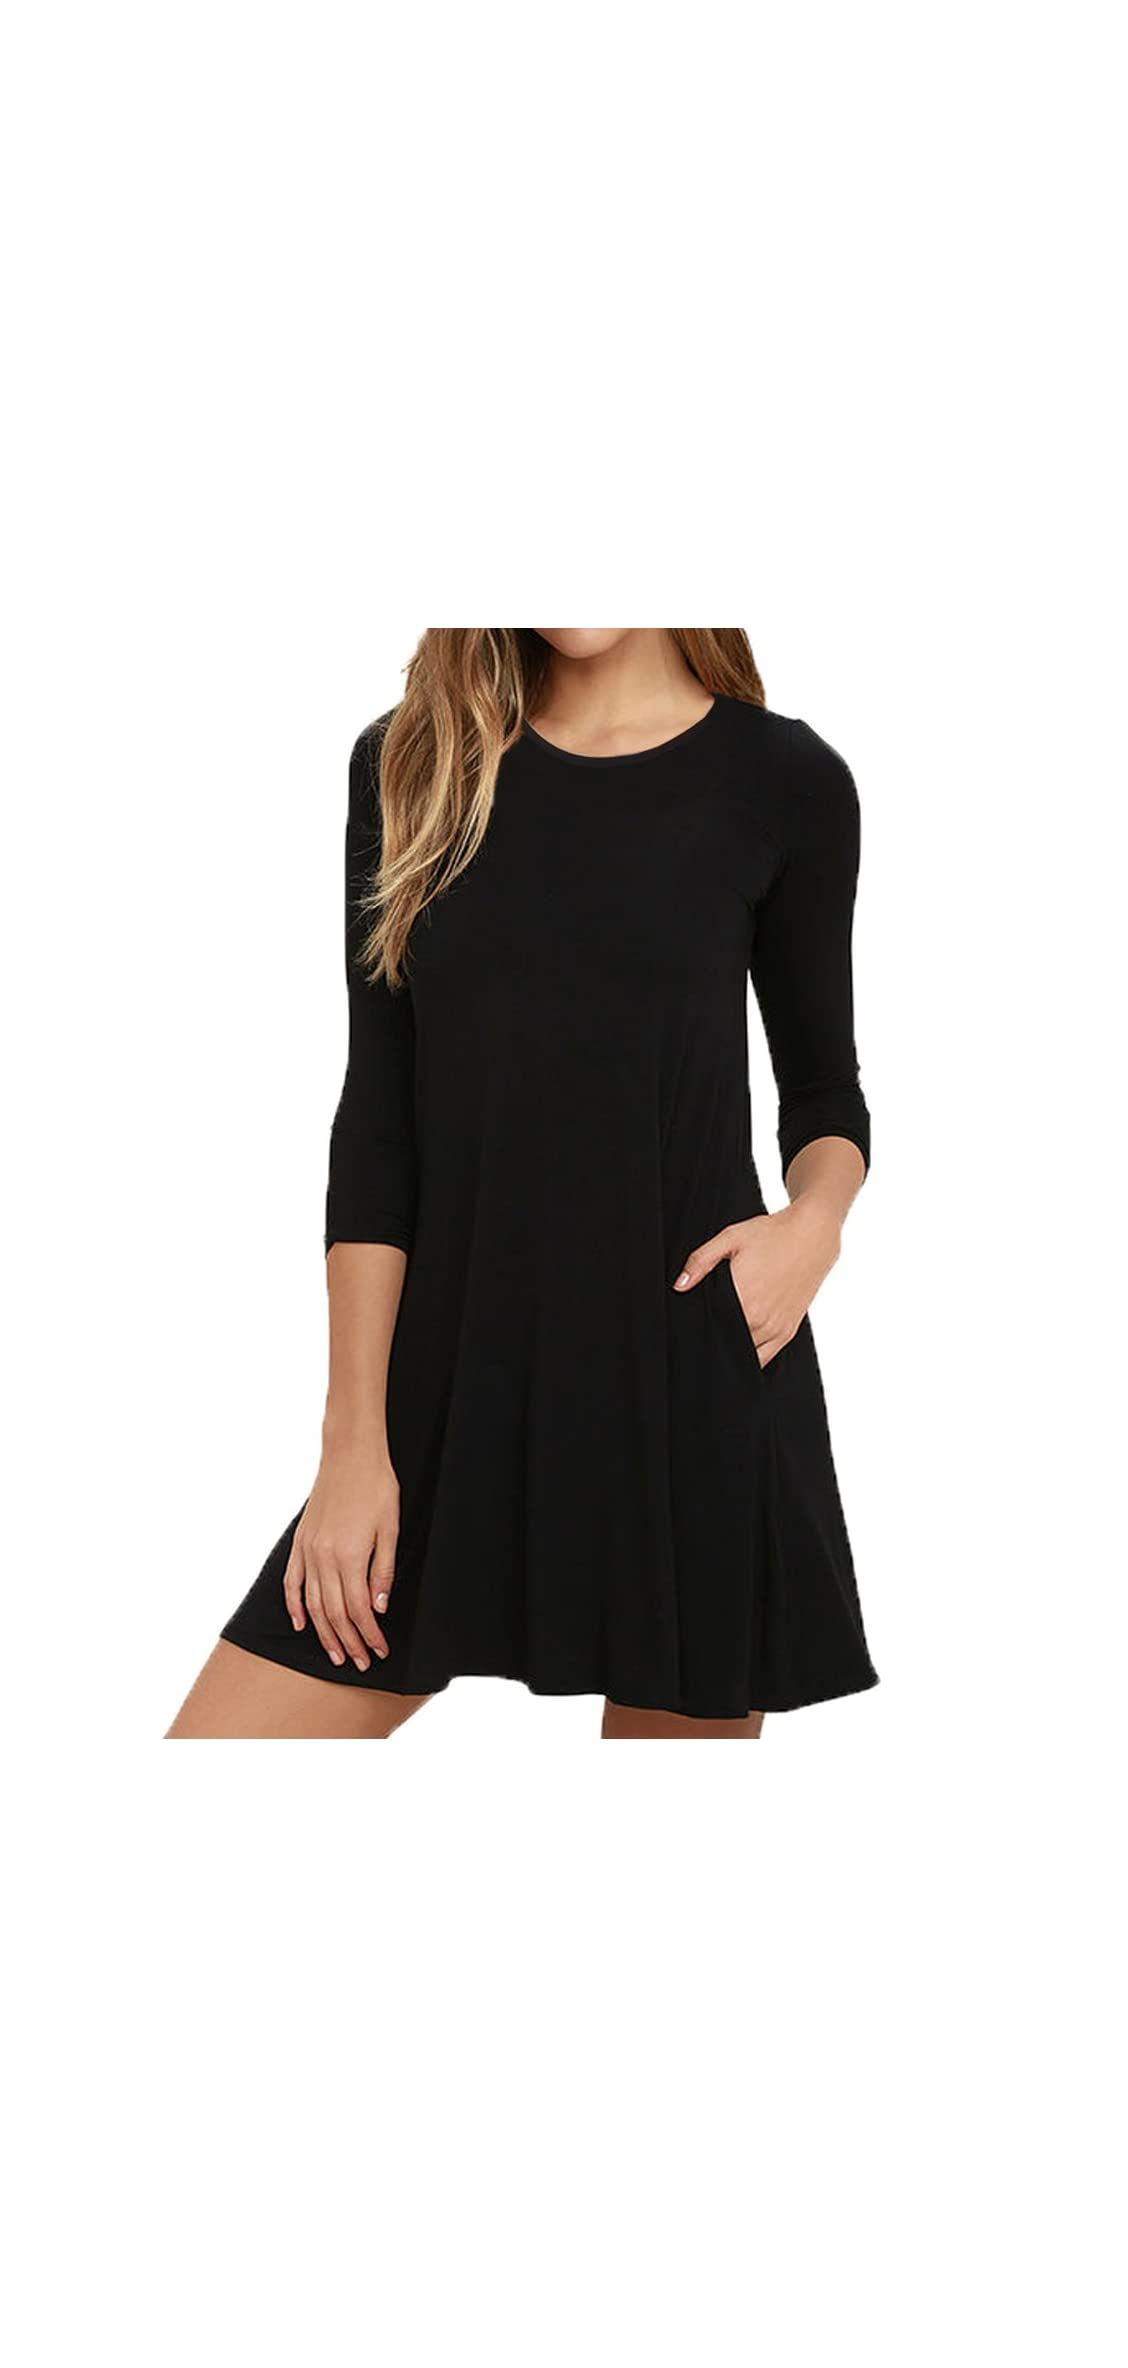 Womens Round Neck / Sleeves A-line Casual Tshirt Dress